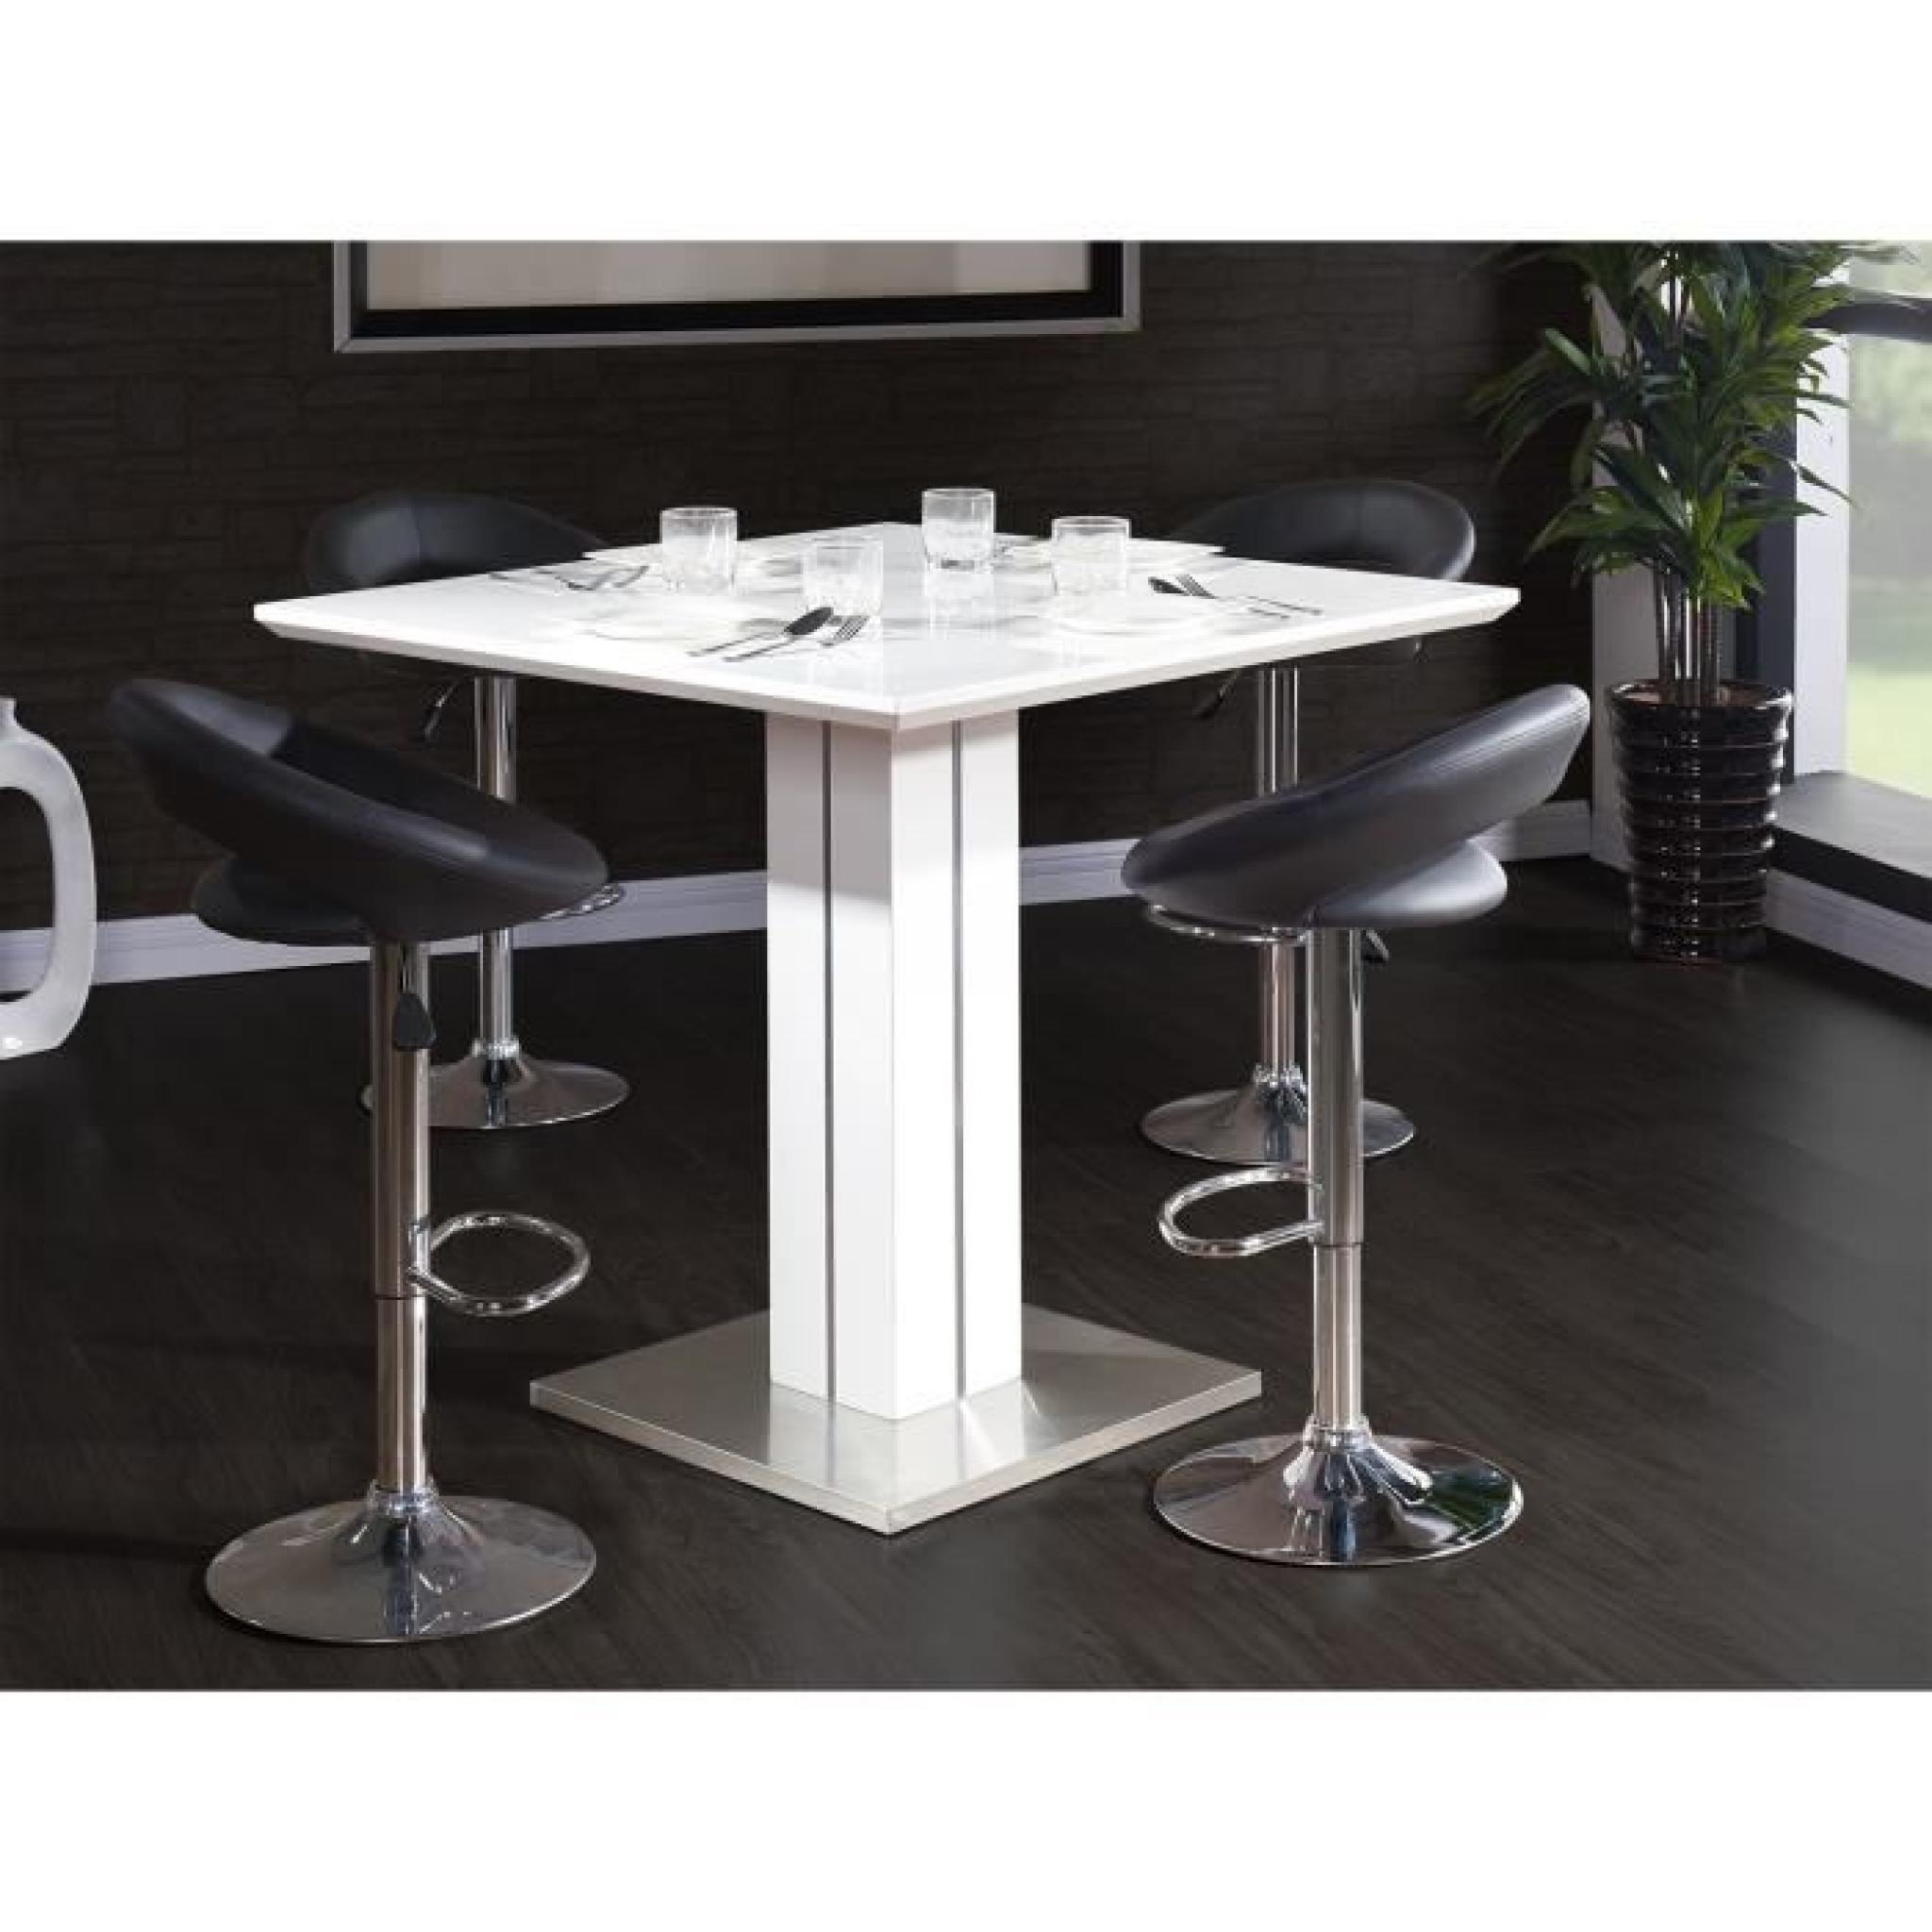 Sandro table de bar 100x100cm laqu blanc brillant achat vente table salle - Table bar blanc laque ...